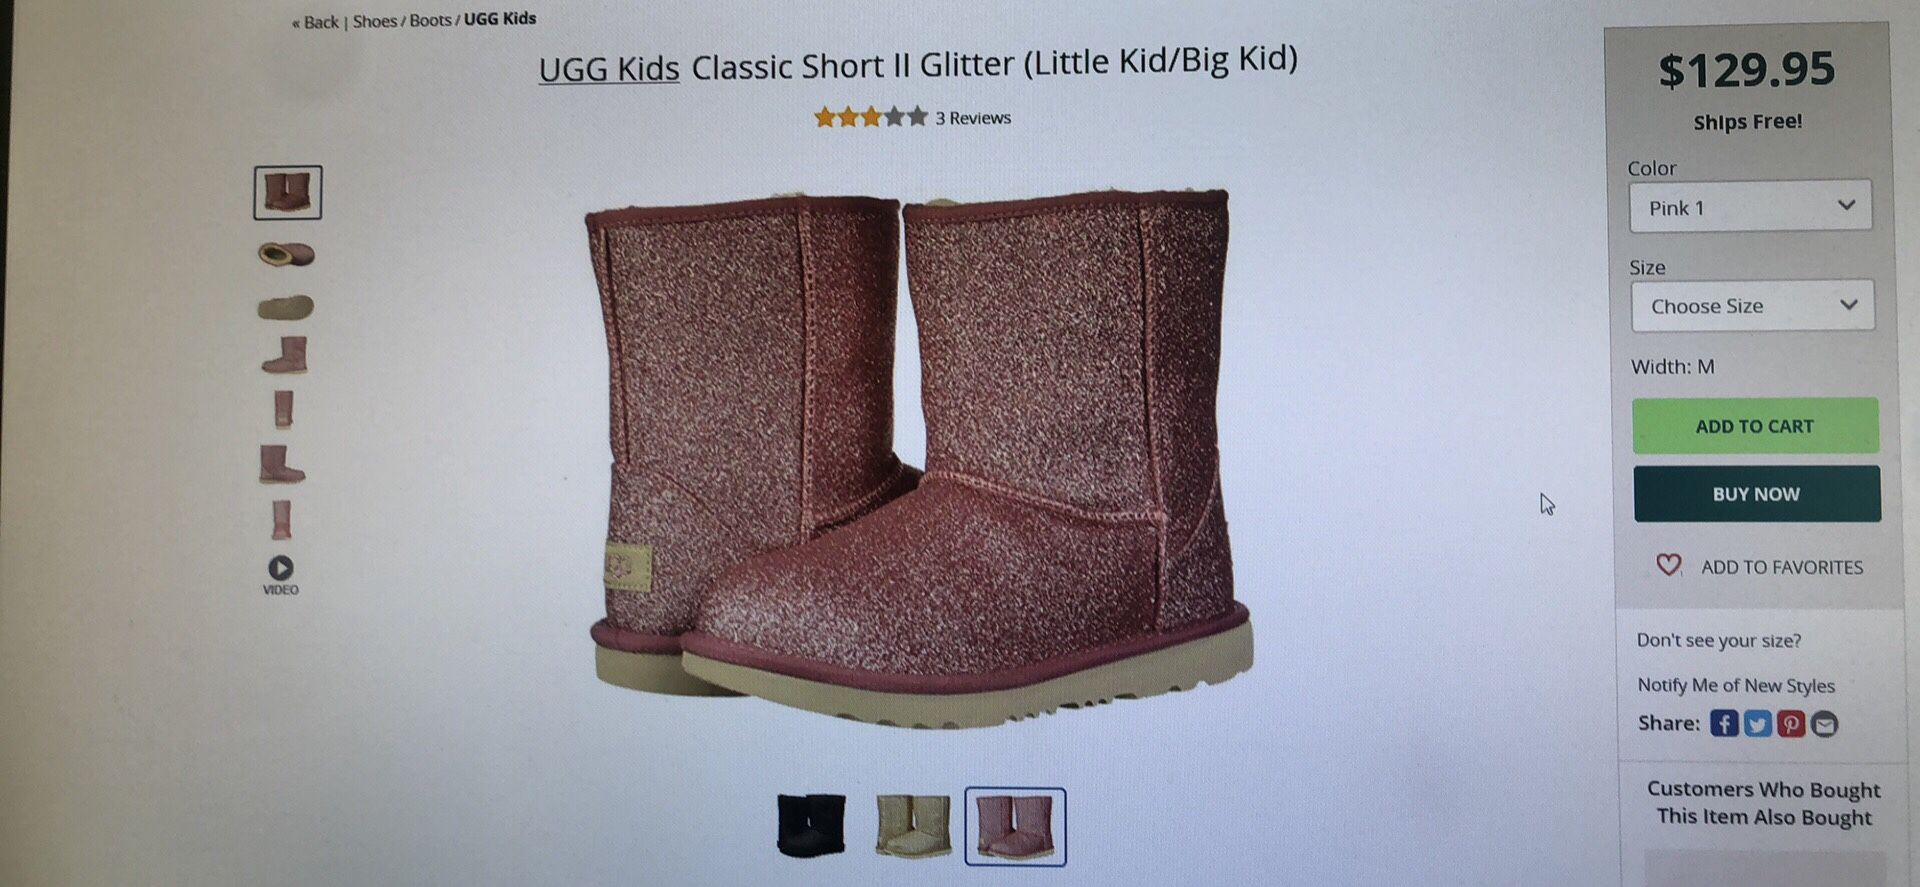 Ugg kids classic short II glitter boots size 9 and 10 toddler